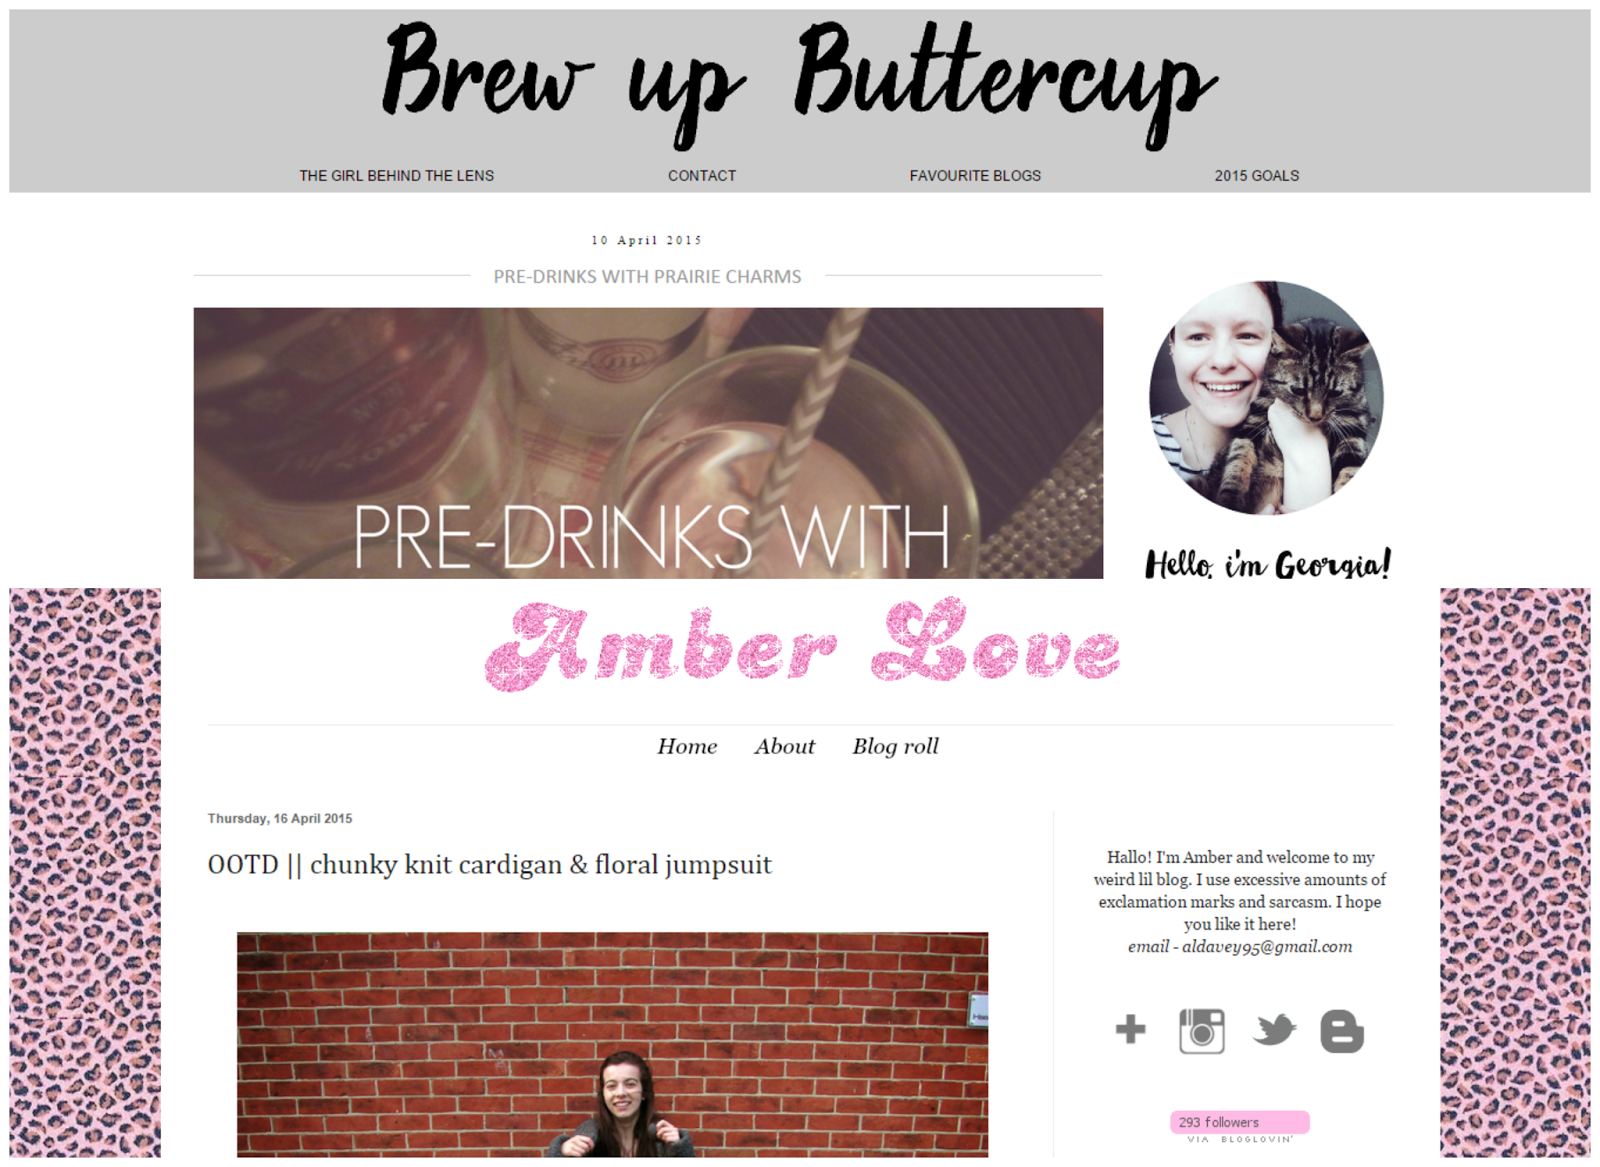 bloggers i love favourite georgia shipley brew up buttercup amber love blog